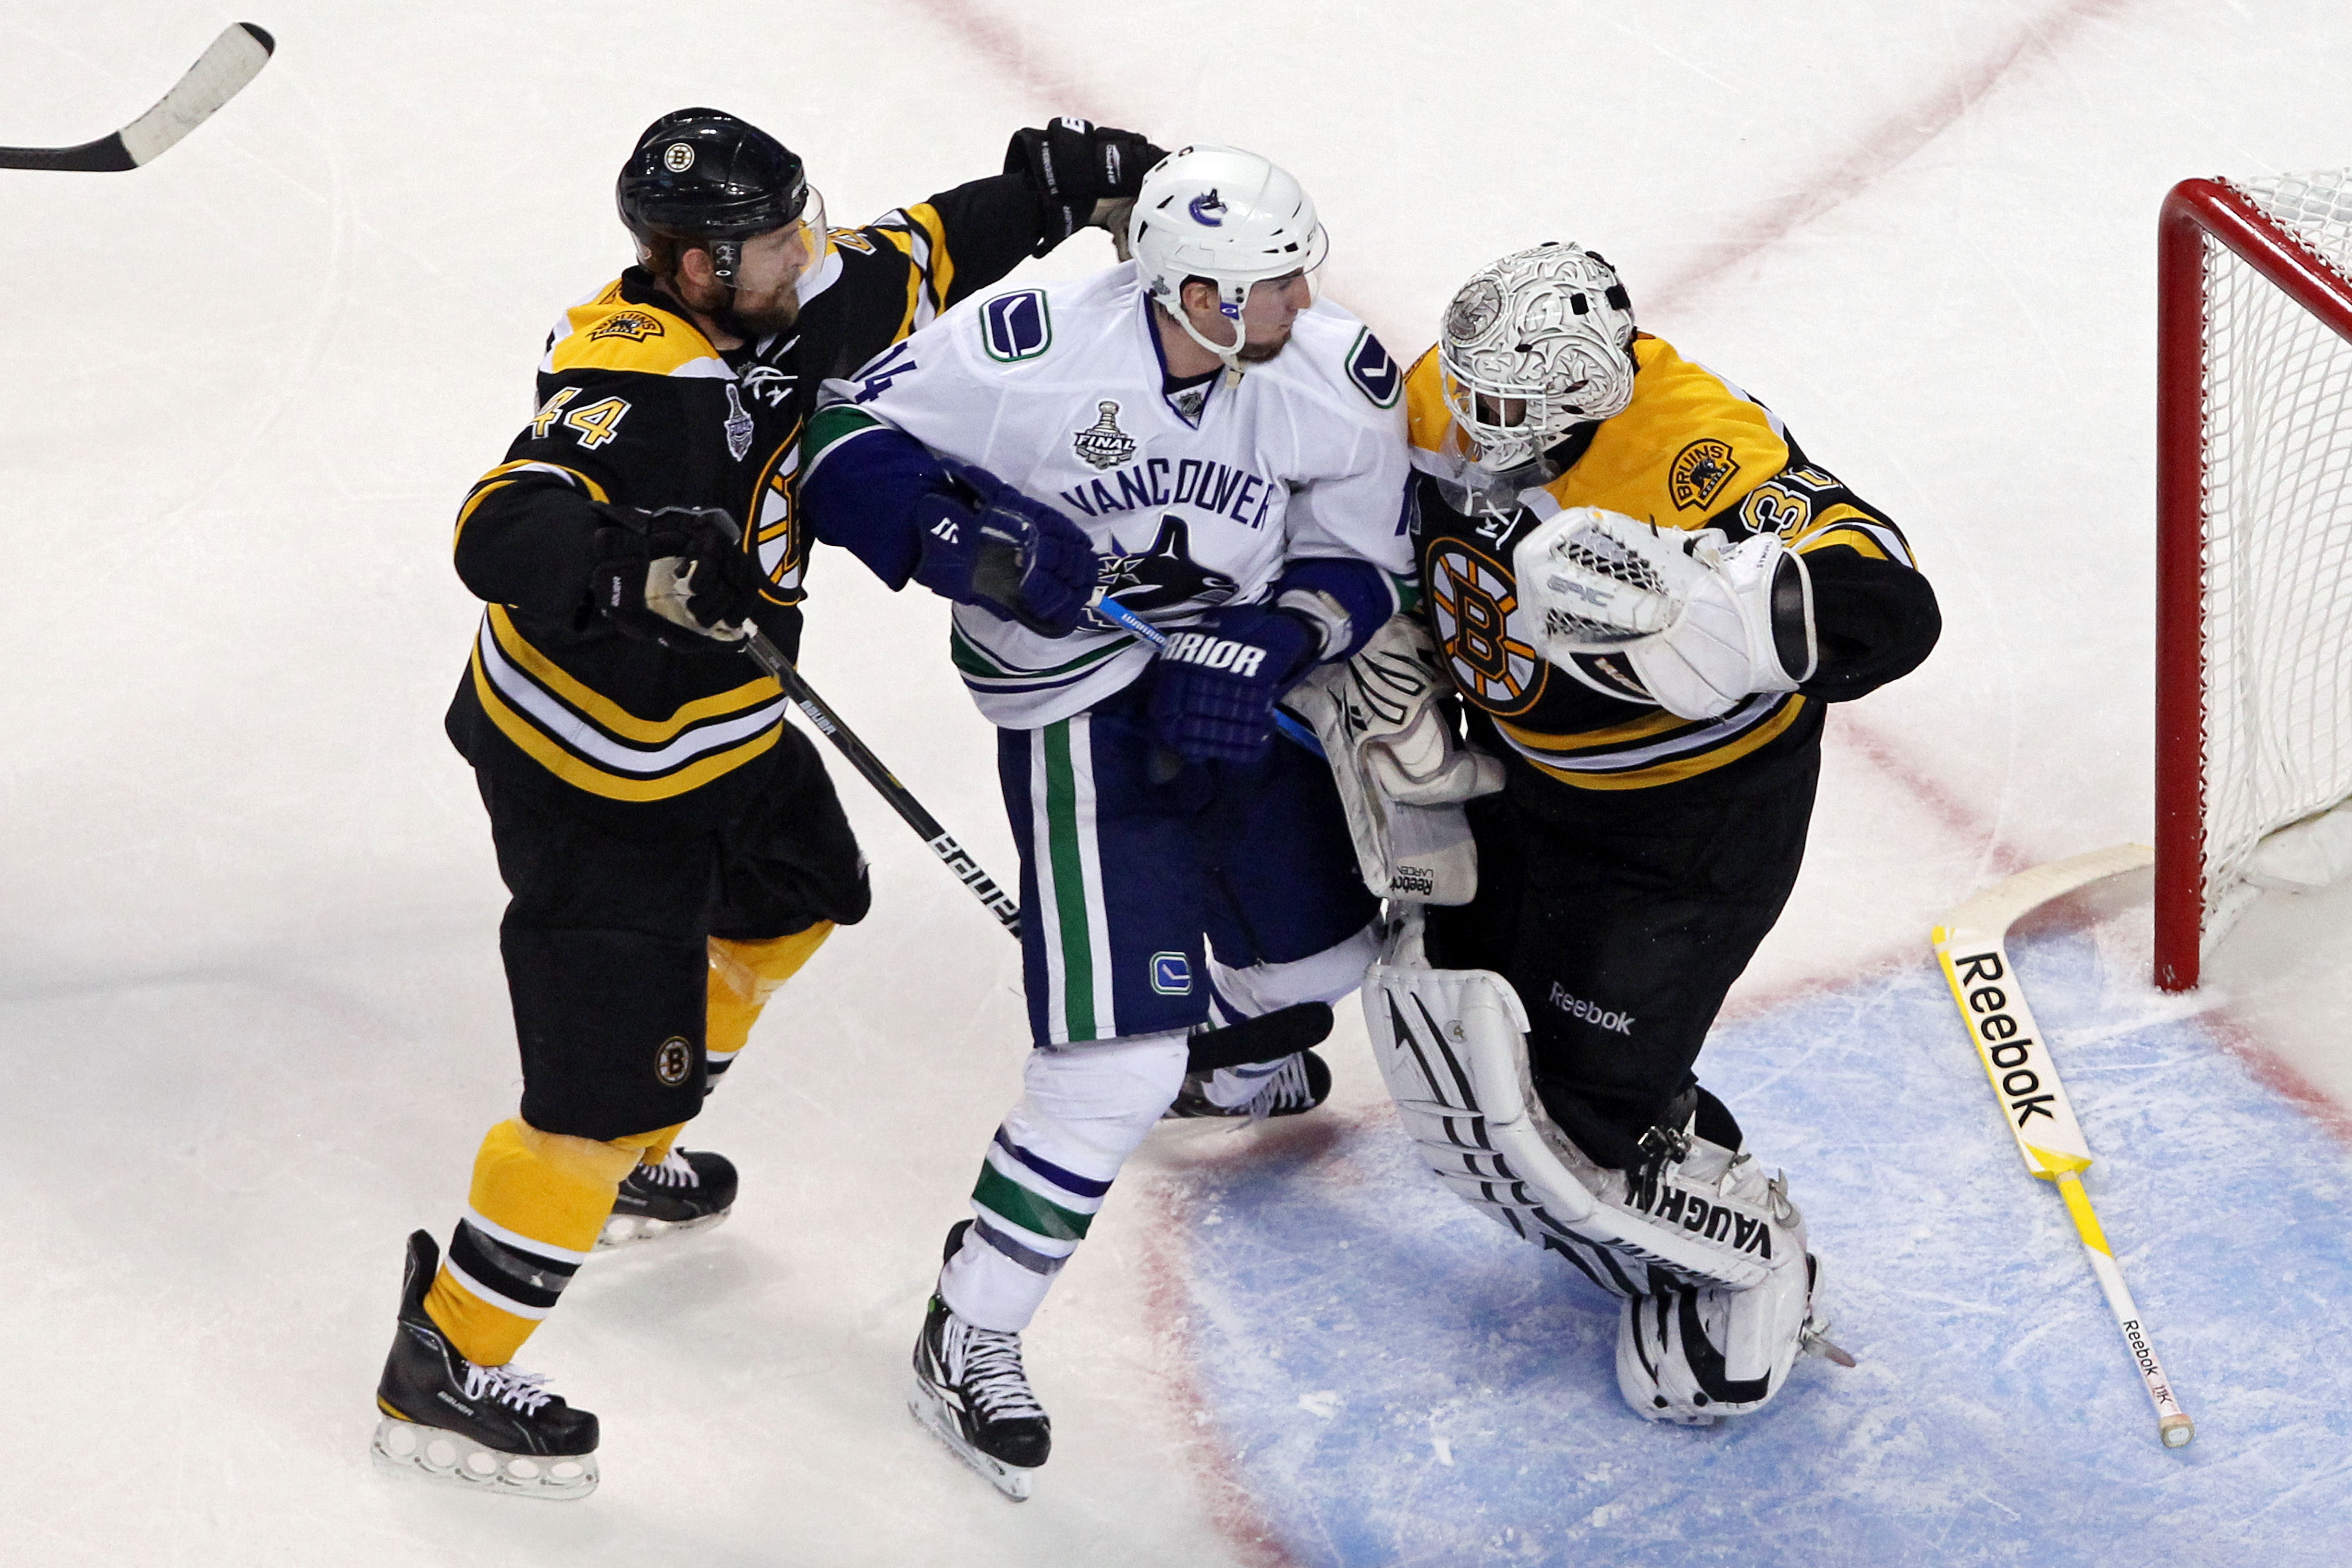 BOSTON, MA - JUNE 08:  Dennis Seidenberg #44 of the Boston Bruins  tackles Alex Burrows #14 of the Vancouver Canucks after an incident with Tim Thomas #30 of the Boston Bruins during Game Four of the 2011 NHL Stanley Cup Final at TD Garden on June 8, 2011